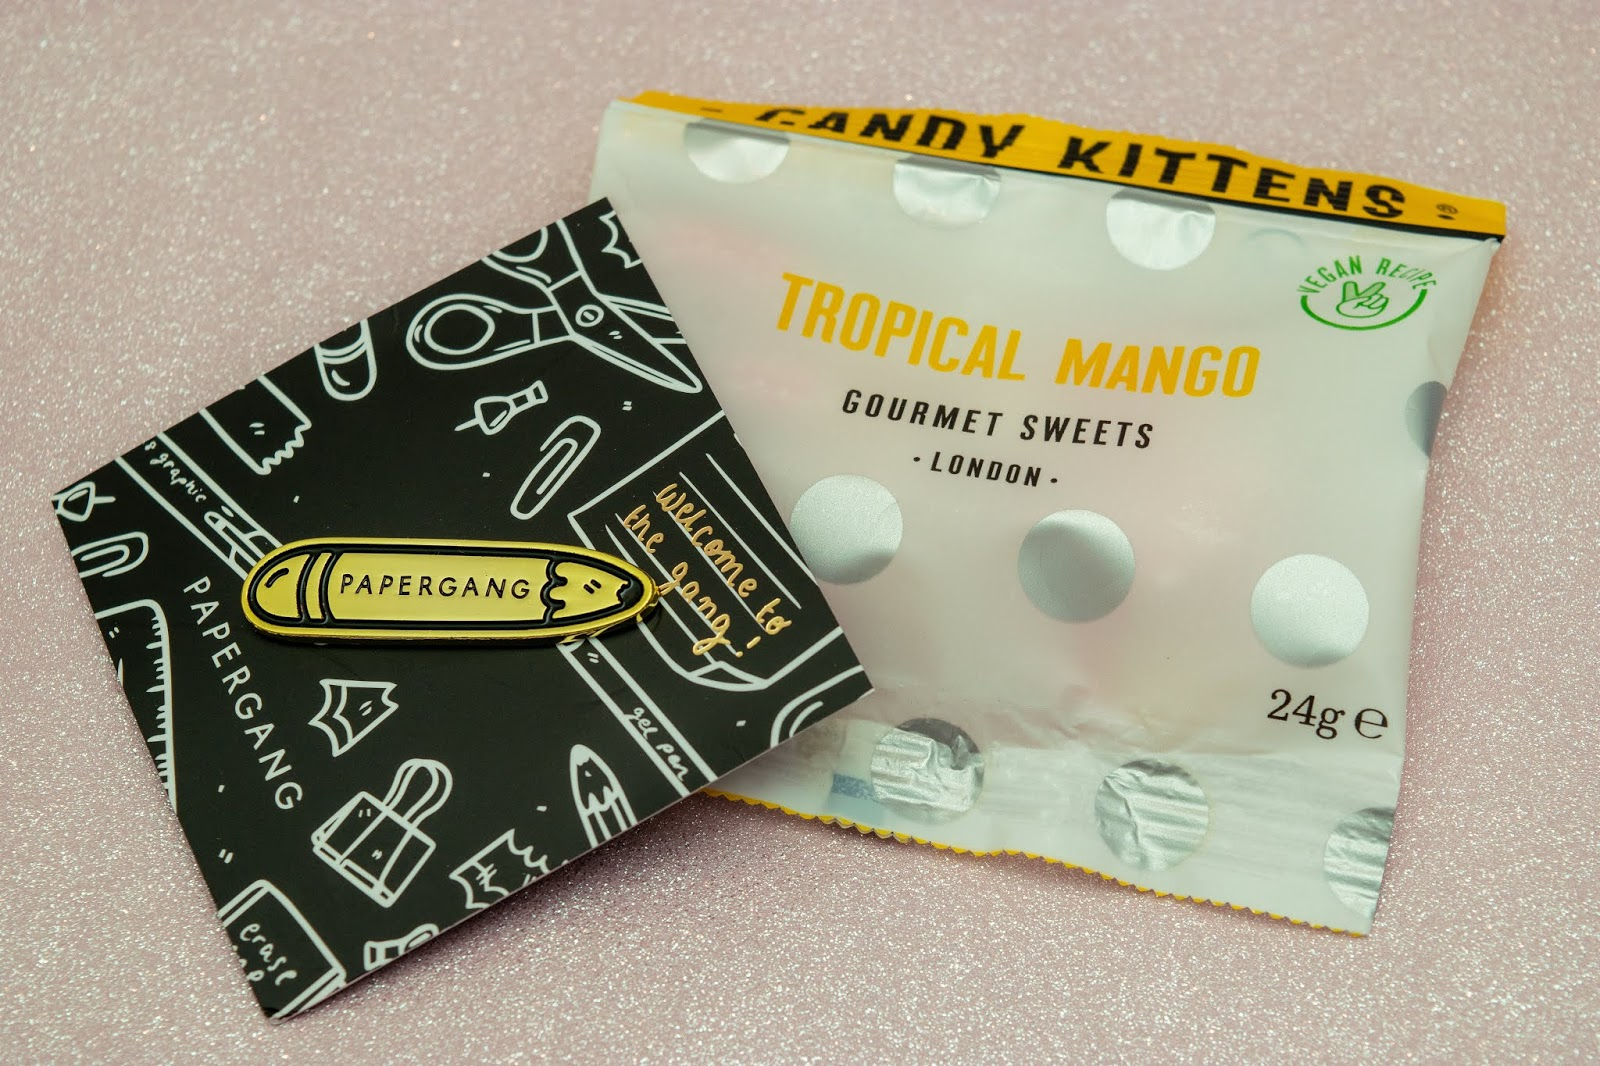 A pin on black card. The pin is gold in the shape of a pencil with the word Papergang on it. The sweets are tropical mango Candy Kittens.